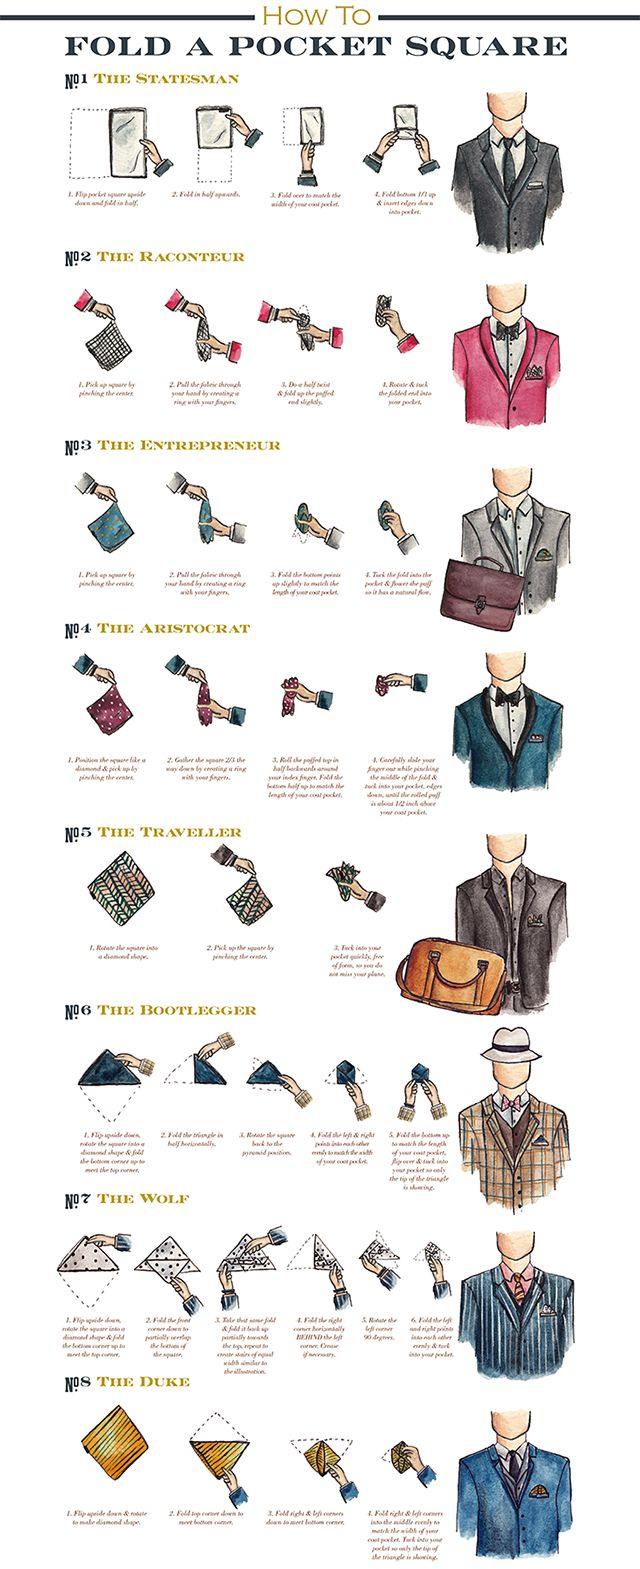 Hey friends, back with another installment of the Radley Raven  How To Series! Who knew there we so many ways to fold a pocket square! ...